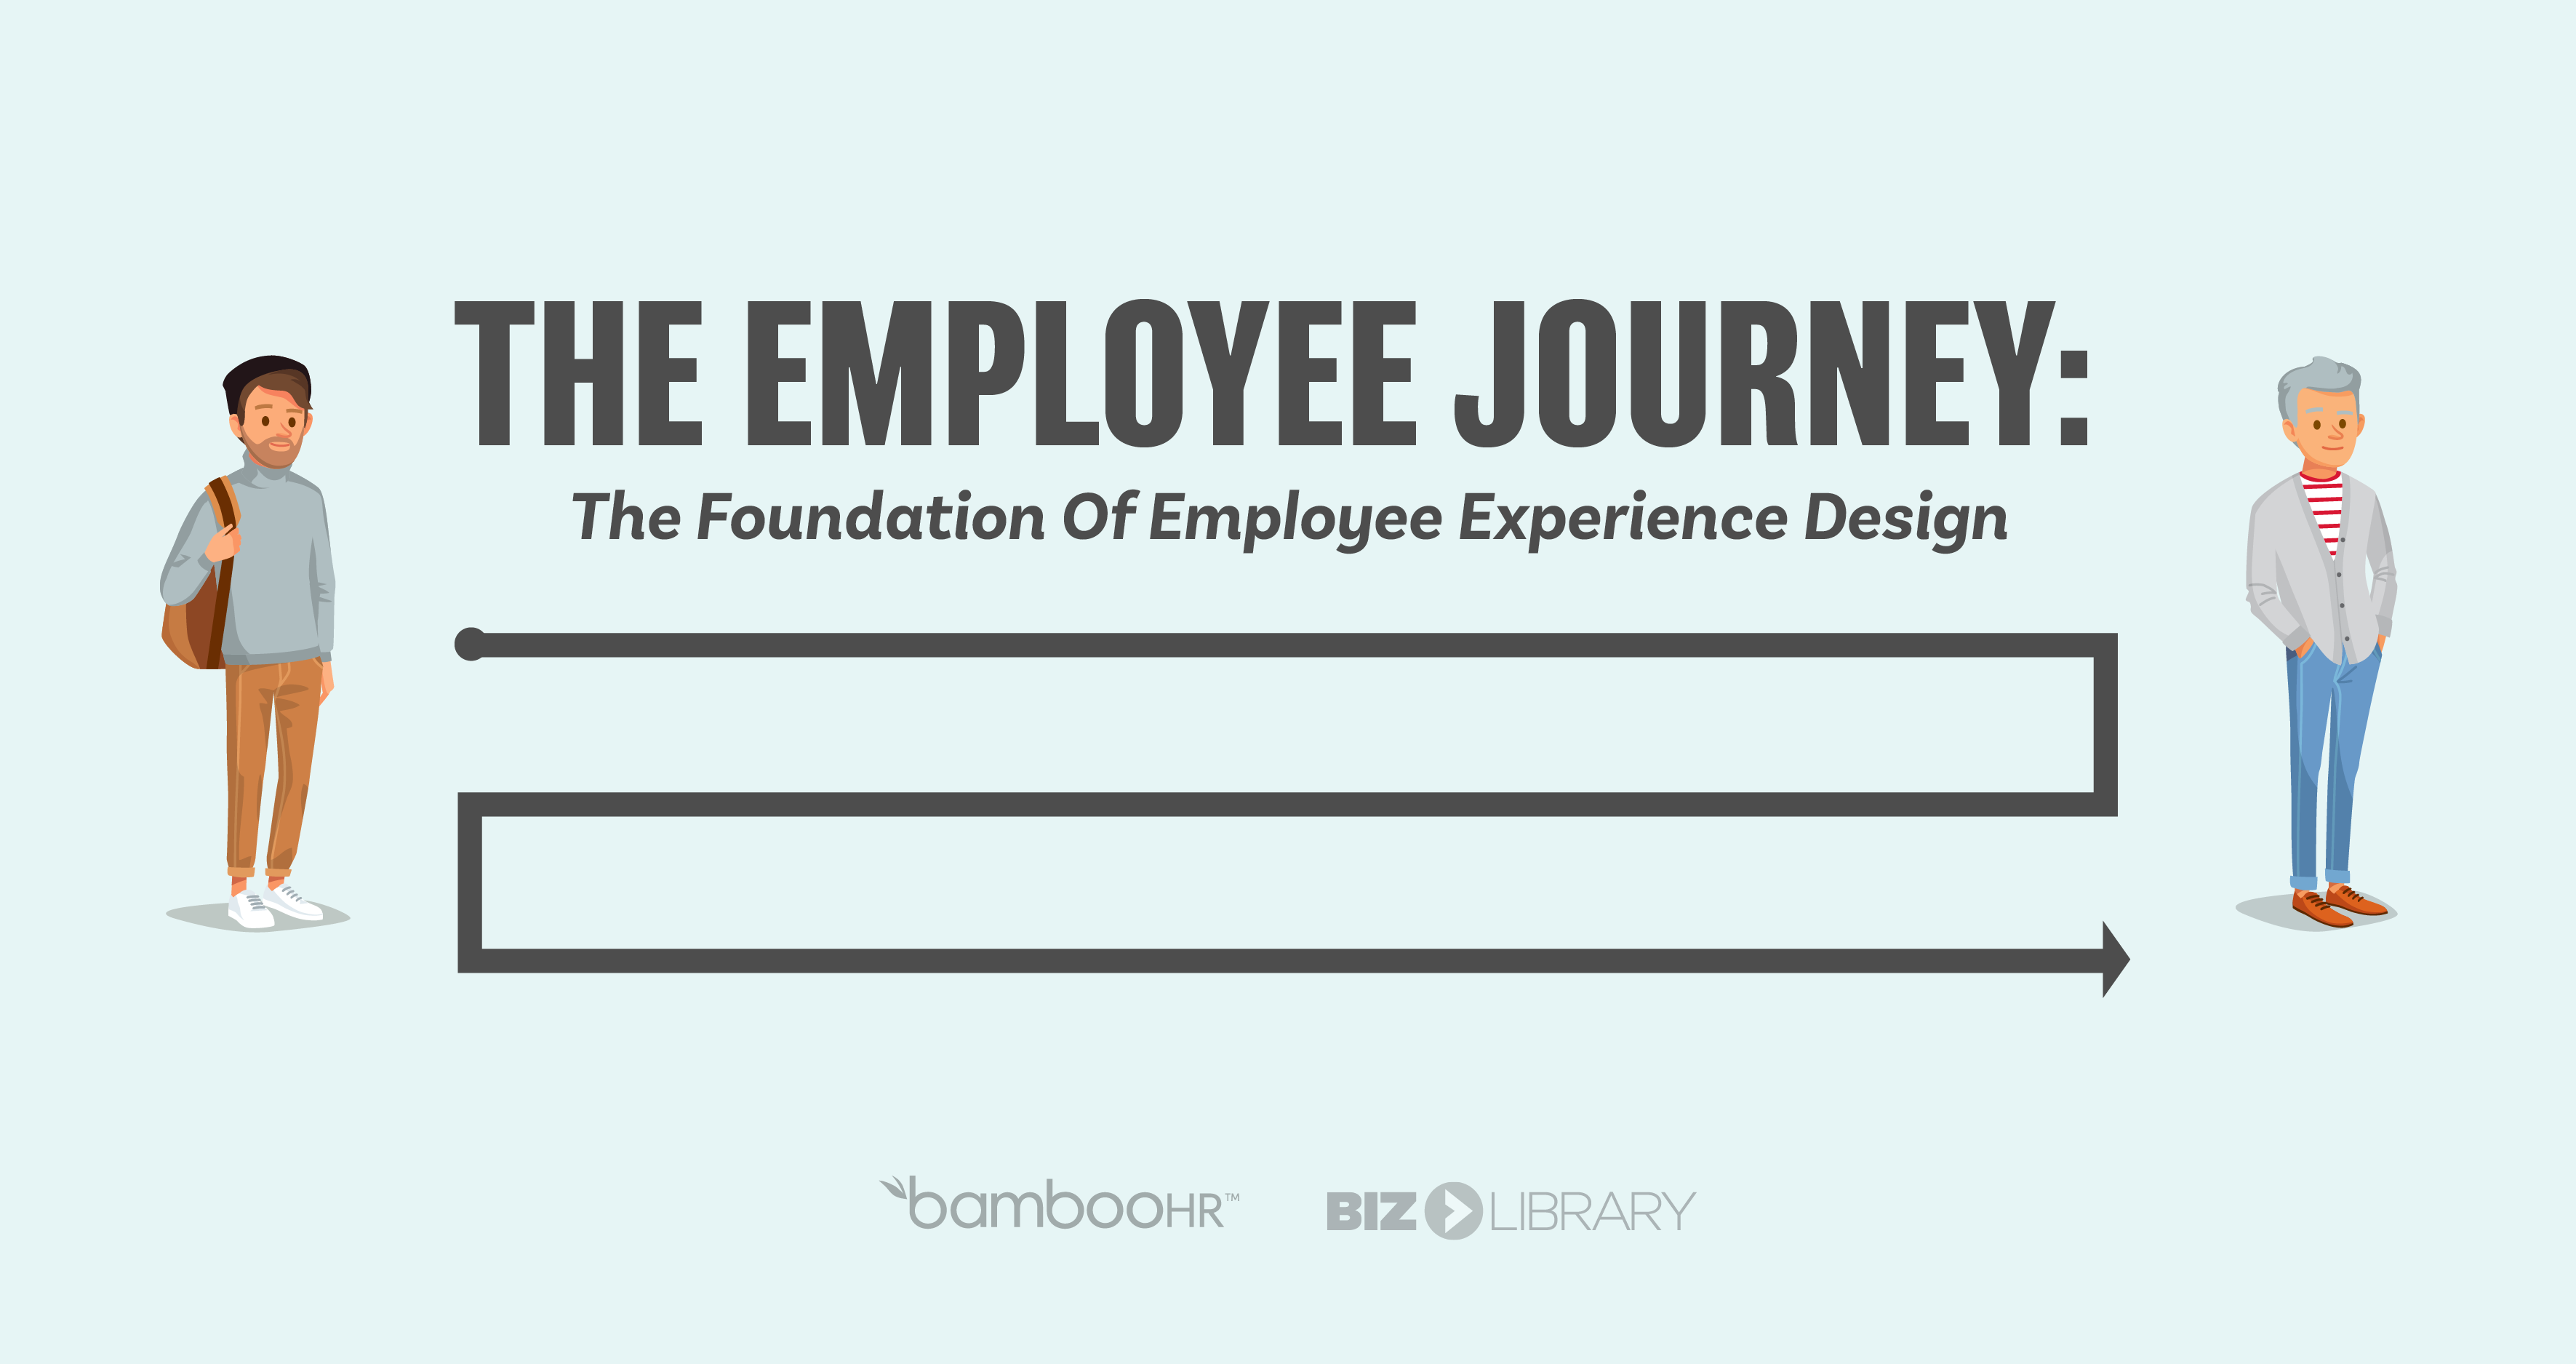 The Employee Journey: the Foundation of Employee Experience Design